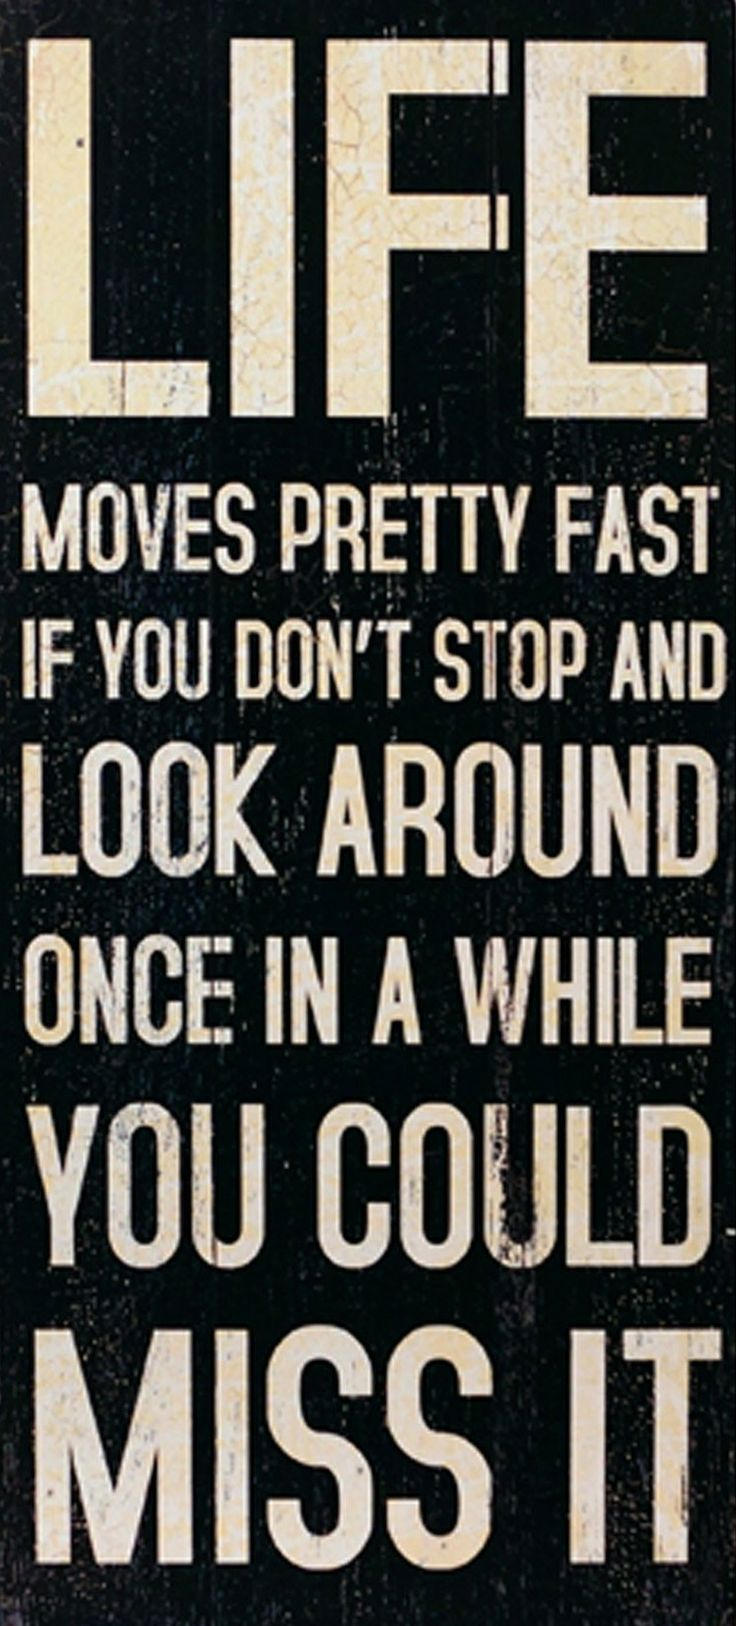 Life Moves Fast ....